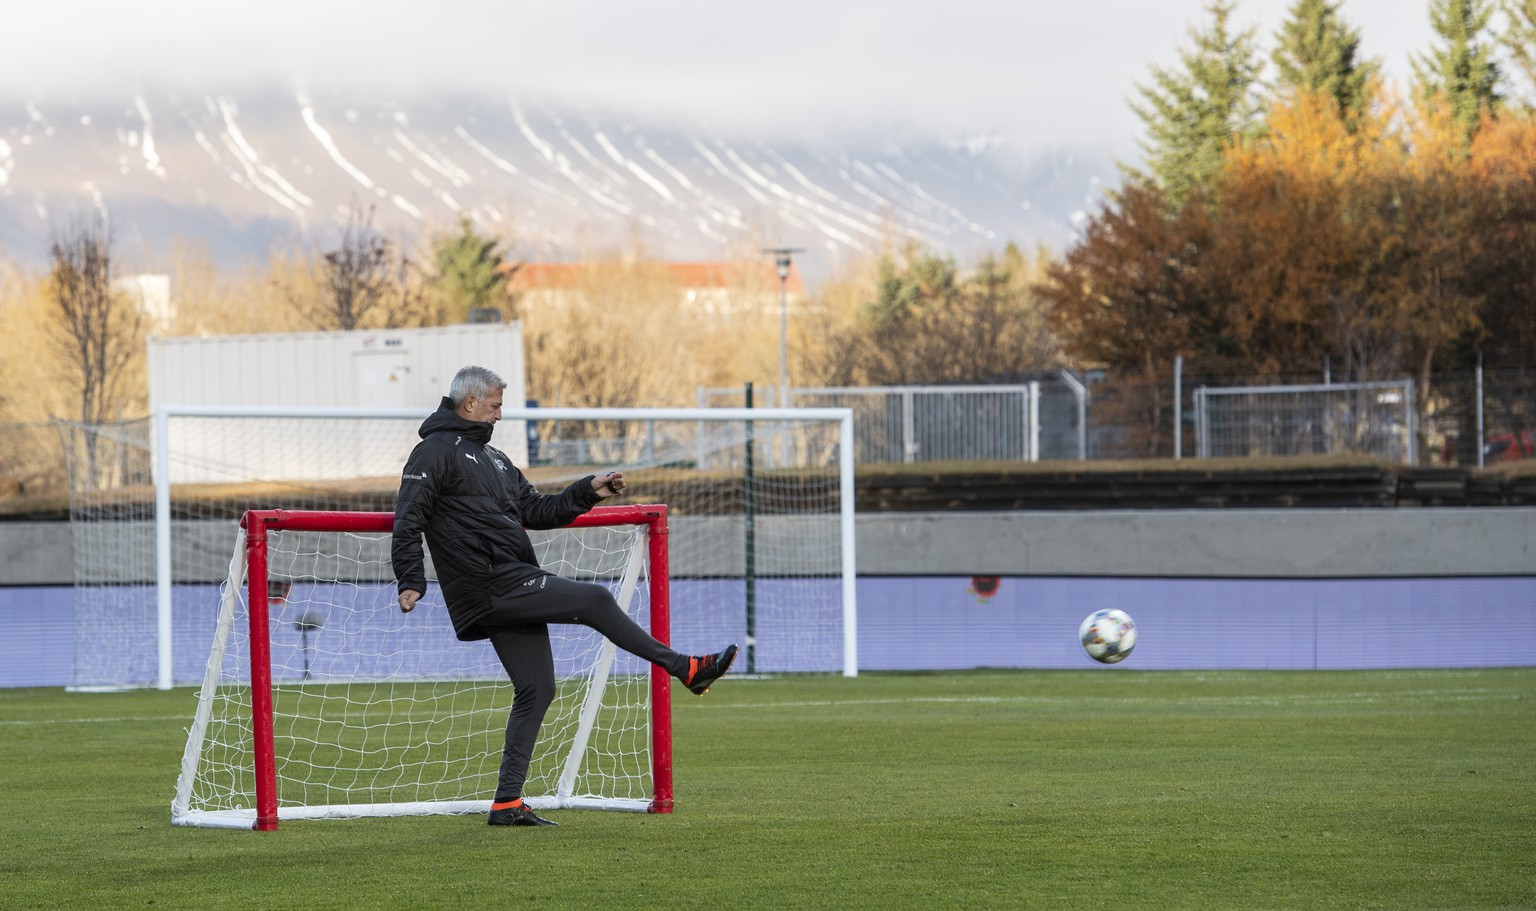 Switzerland's head coach Vladimir Petkovic during a training session the day before the UEFA Nations League soccer match between Iceland and Switzerland, at the Laugardalsvoellur stadium in Reykjavik, Iceland, on Sunday, October 14, 2018. (KEYSTONE/Ennio Leanza).